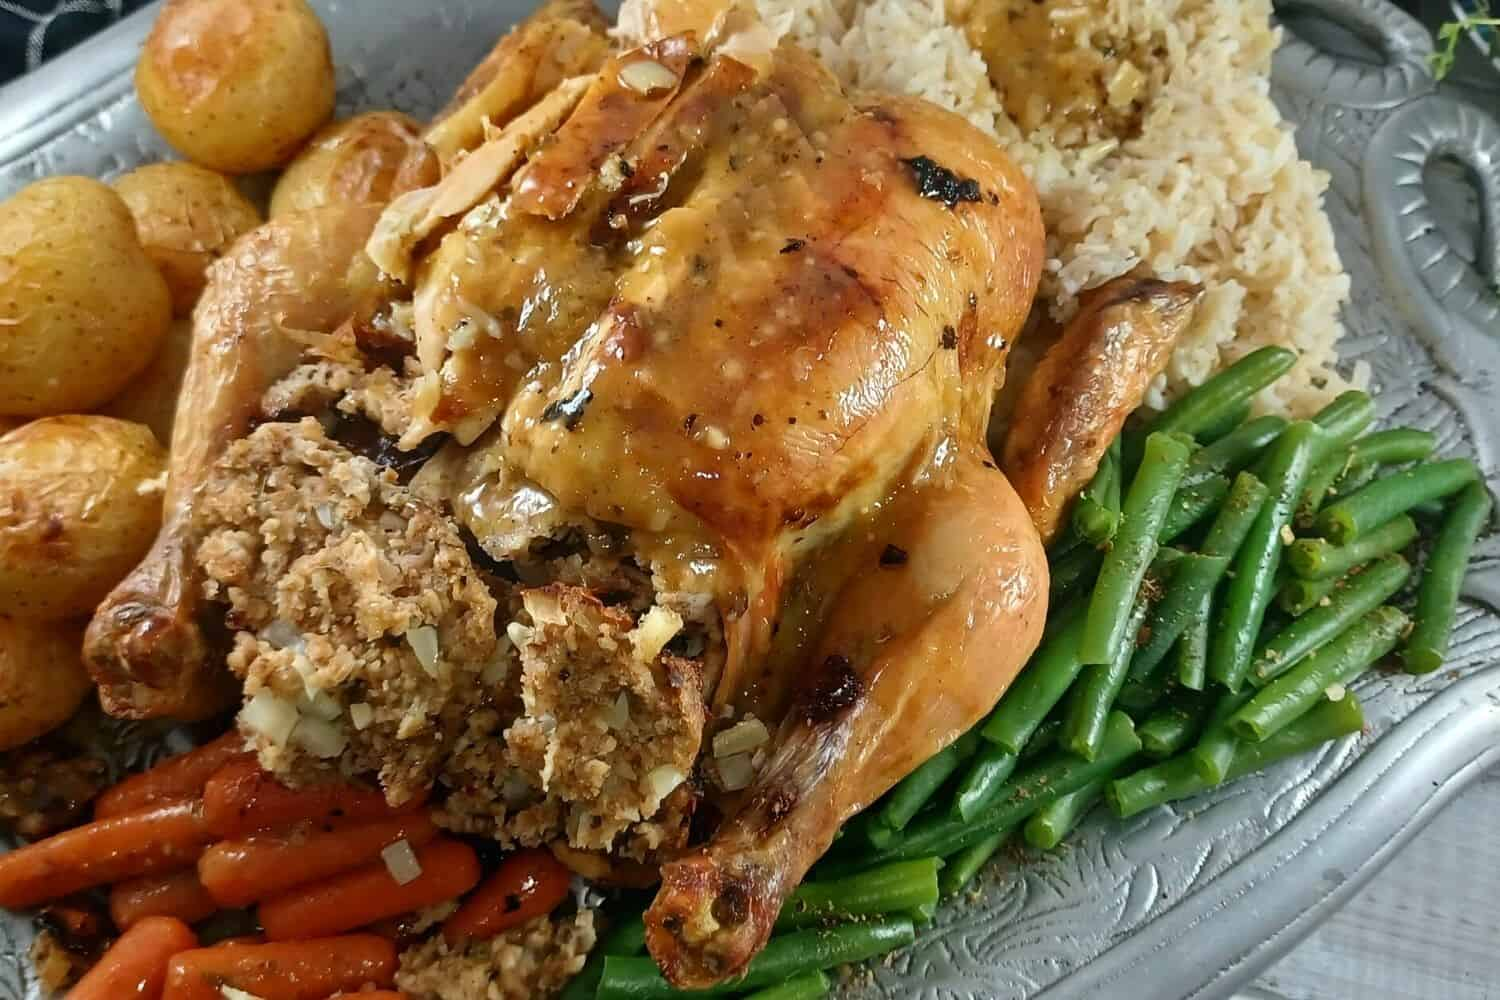 Roasted Chicken with Lemon and Stuffing